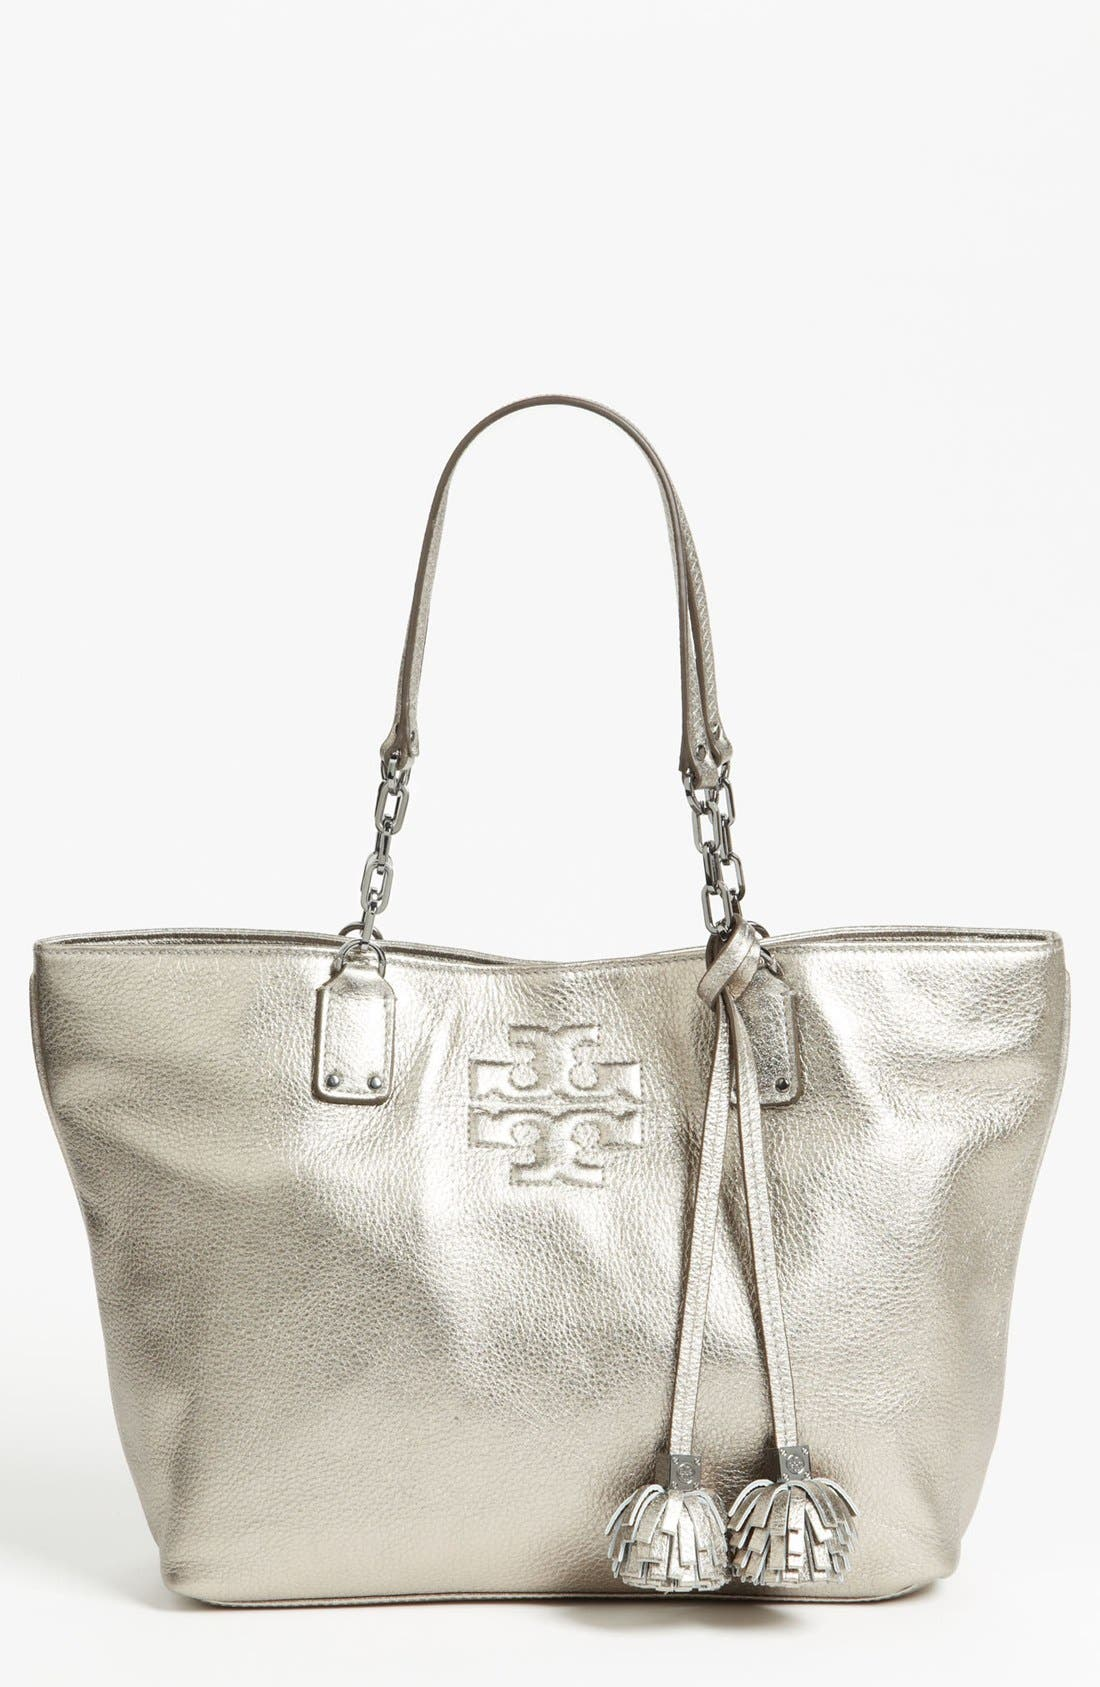 Main Image - Tory Burch 'Thea Metallic - Small' Leather Tote